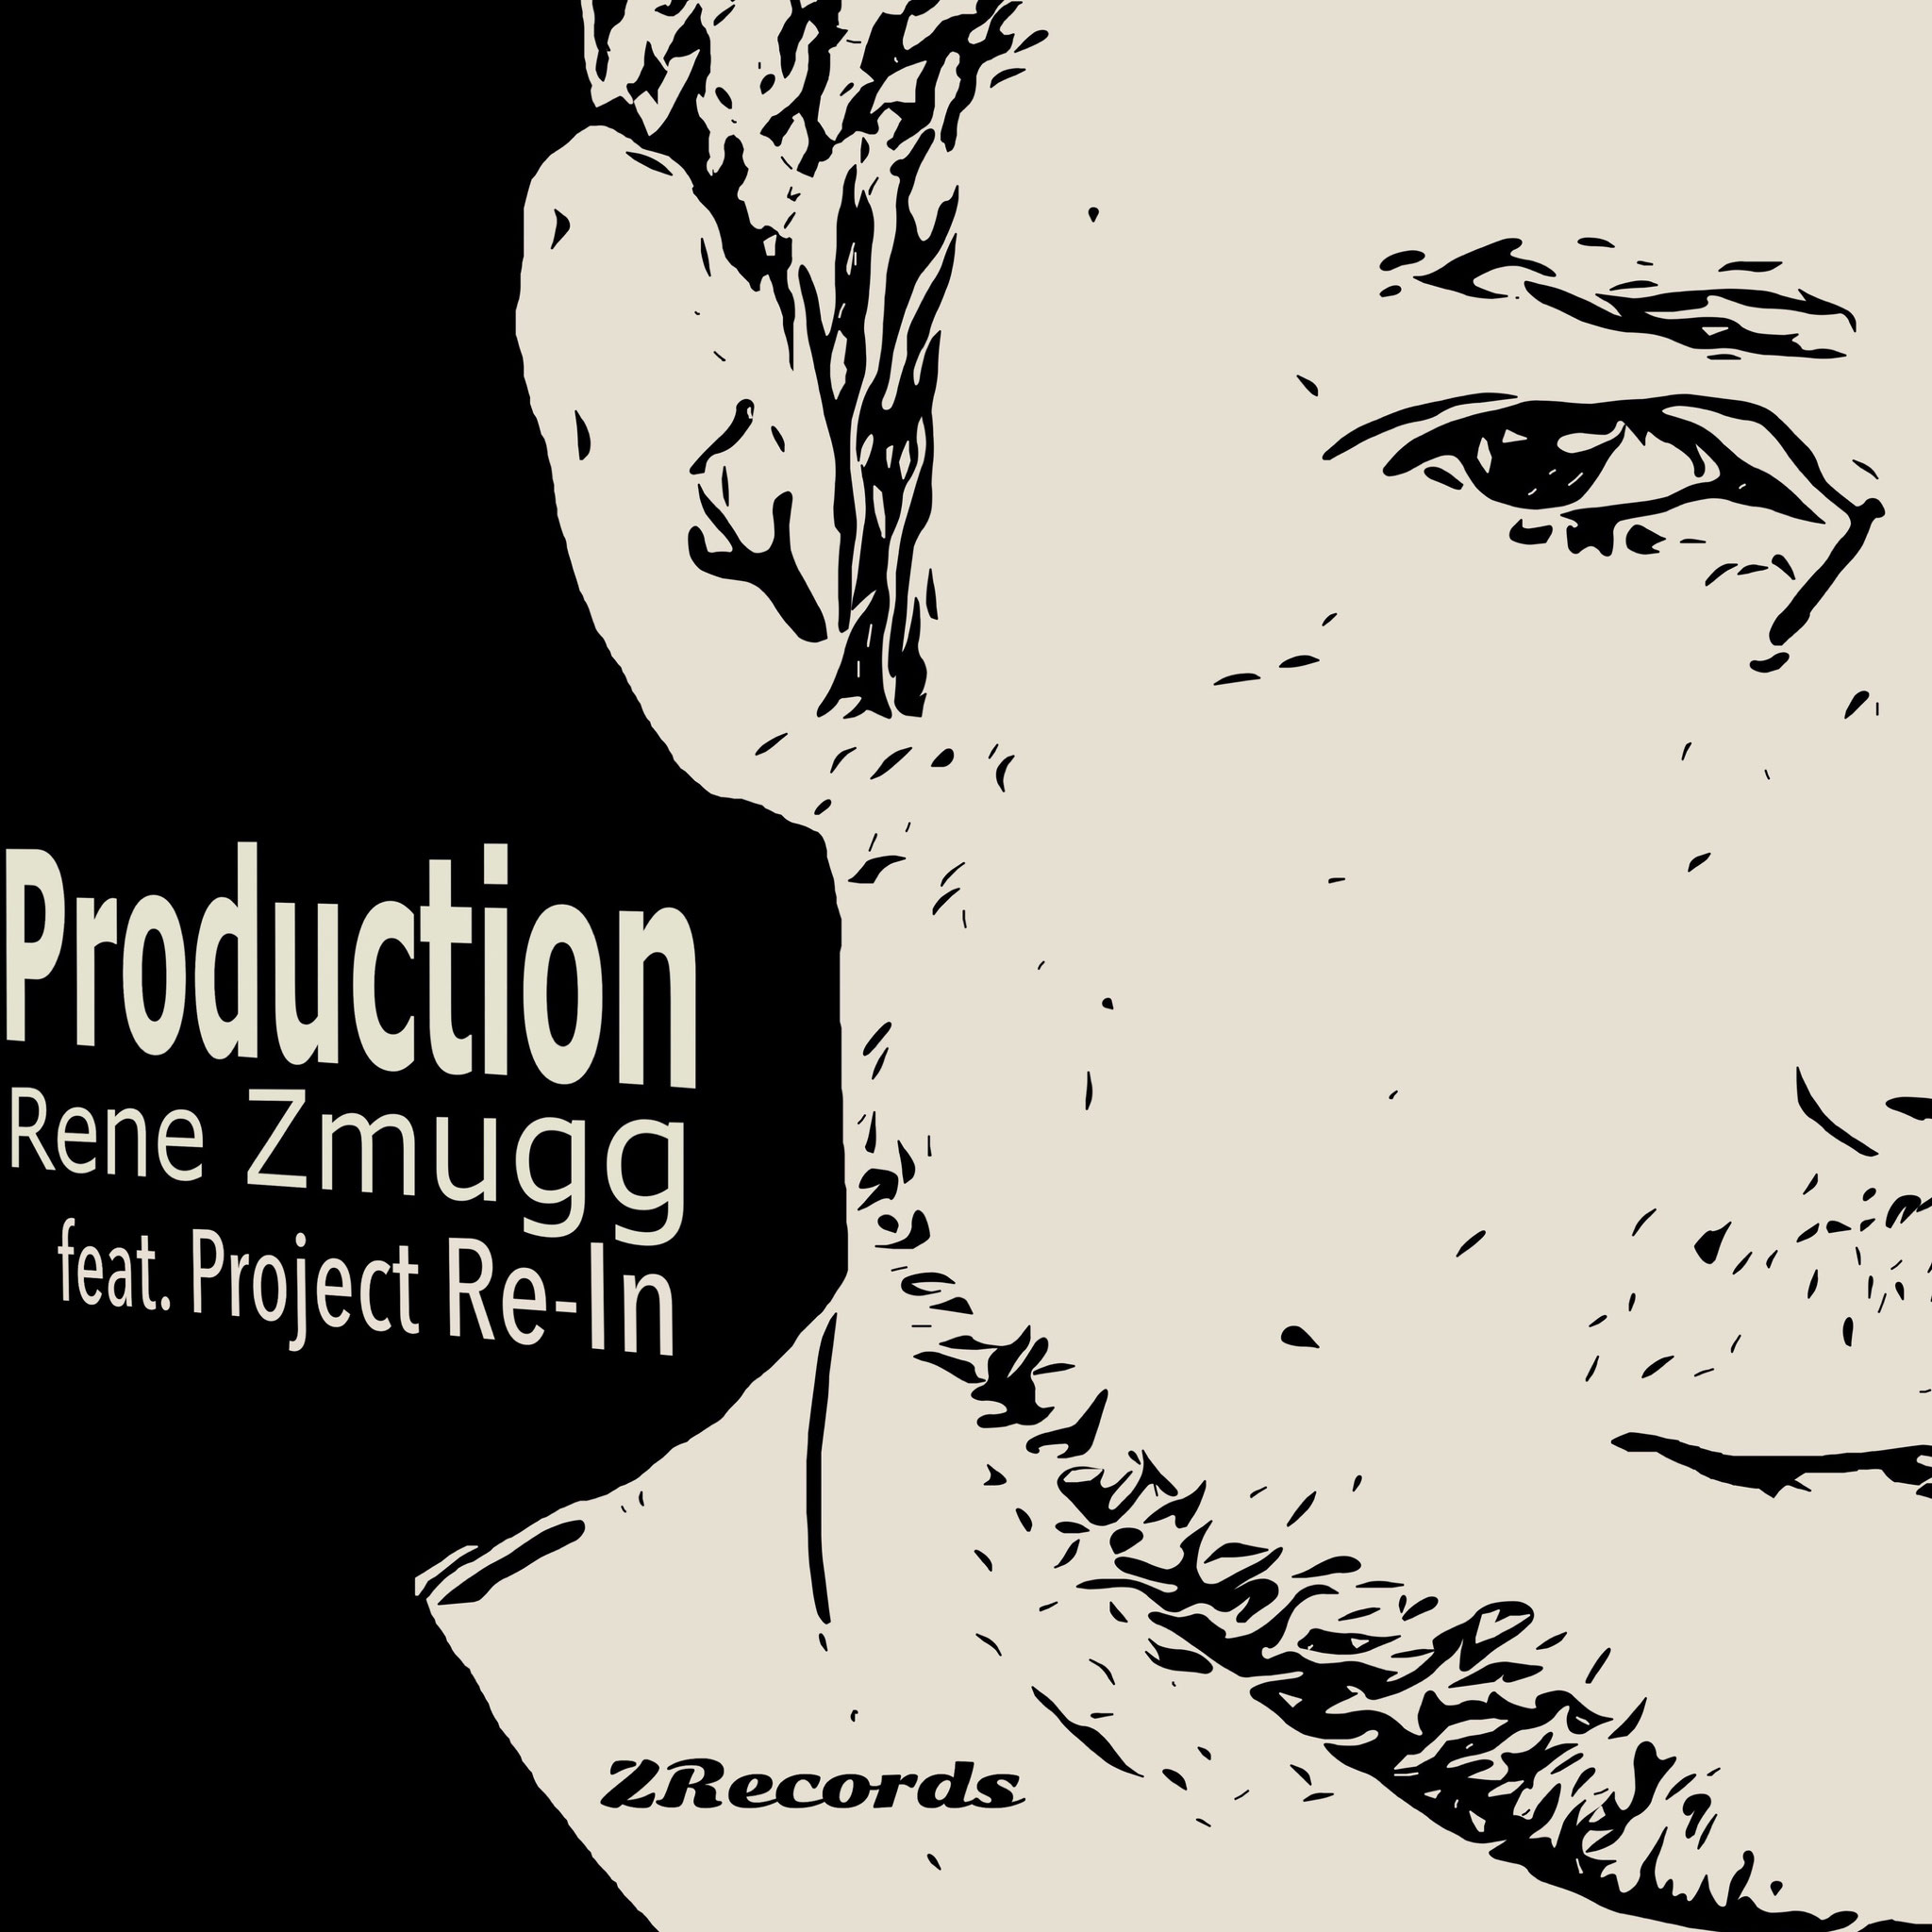 Album - Production